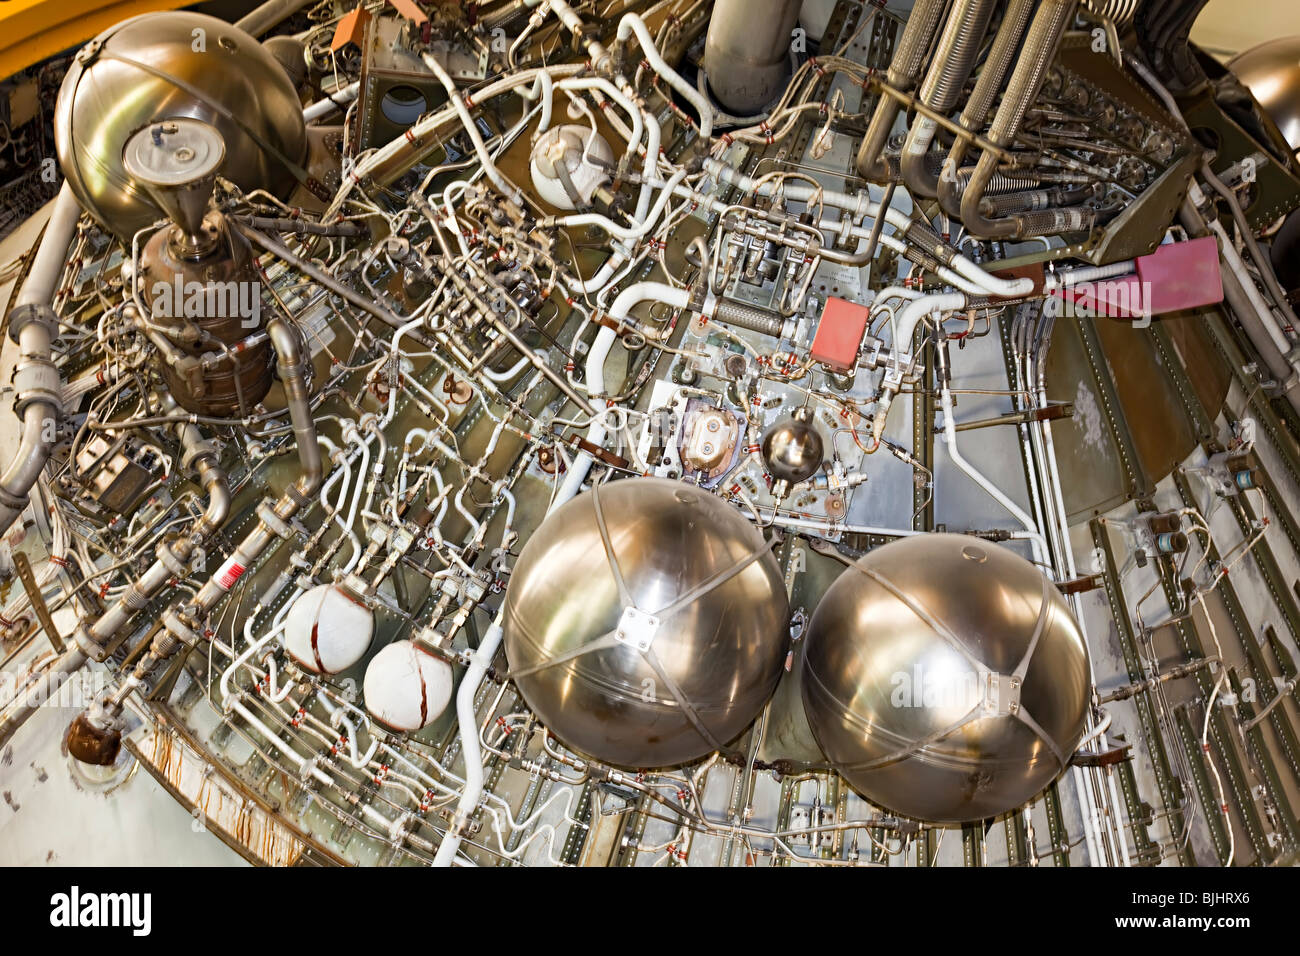 Rocket Engine Space Stock Photos Images Saturn V F1 Diagram Detail Of On Nasa Center Houston Texas Usa Image